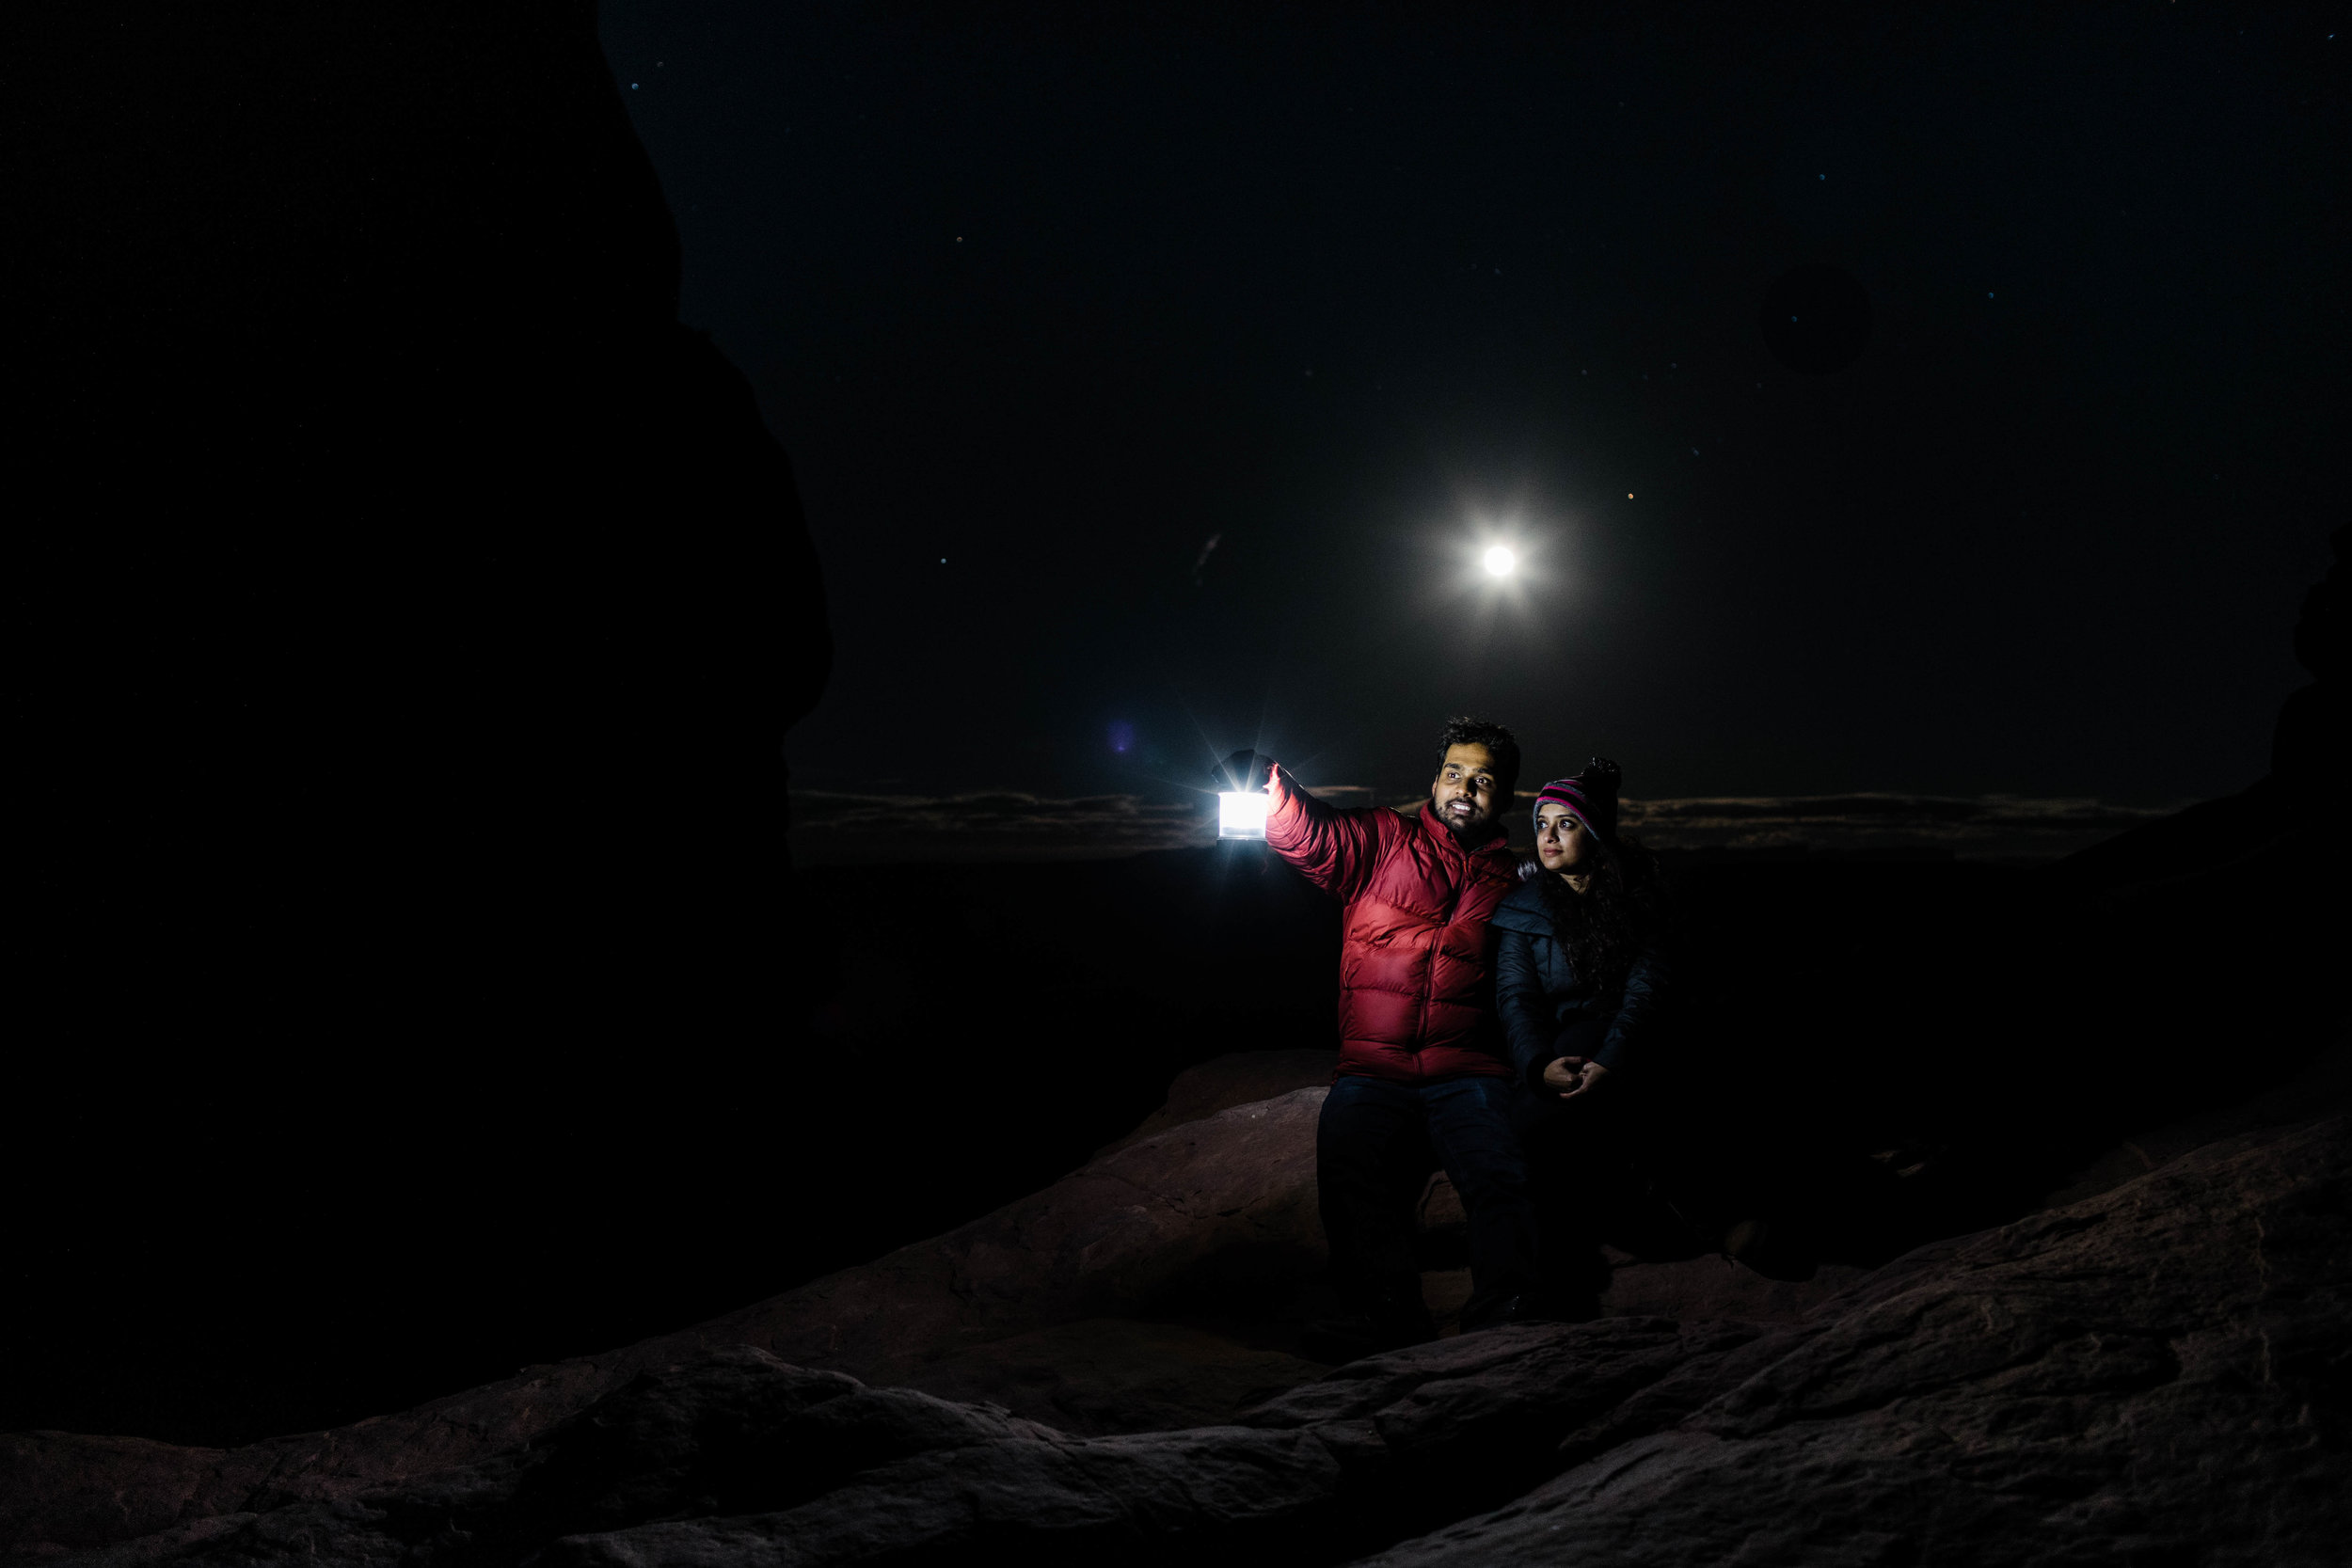 Night hiking adventure elopement wedding in the mountains of Colorado